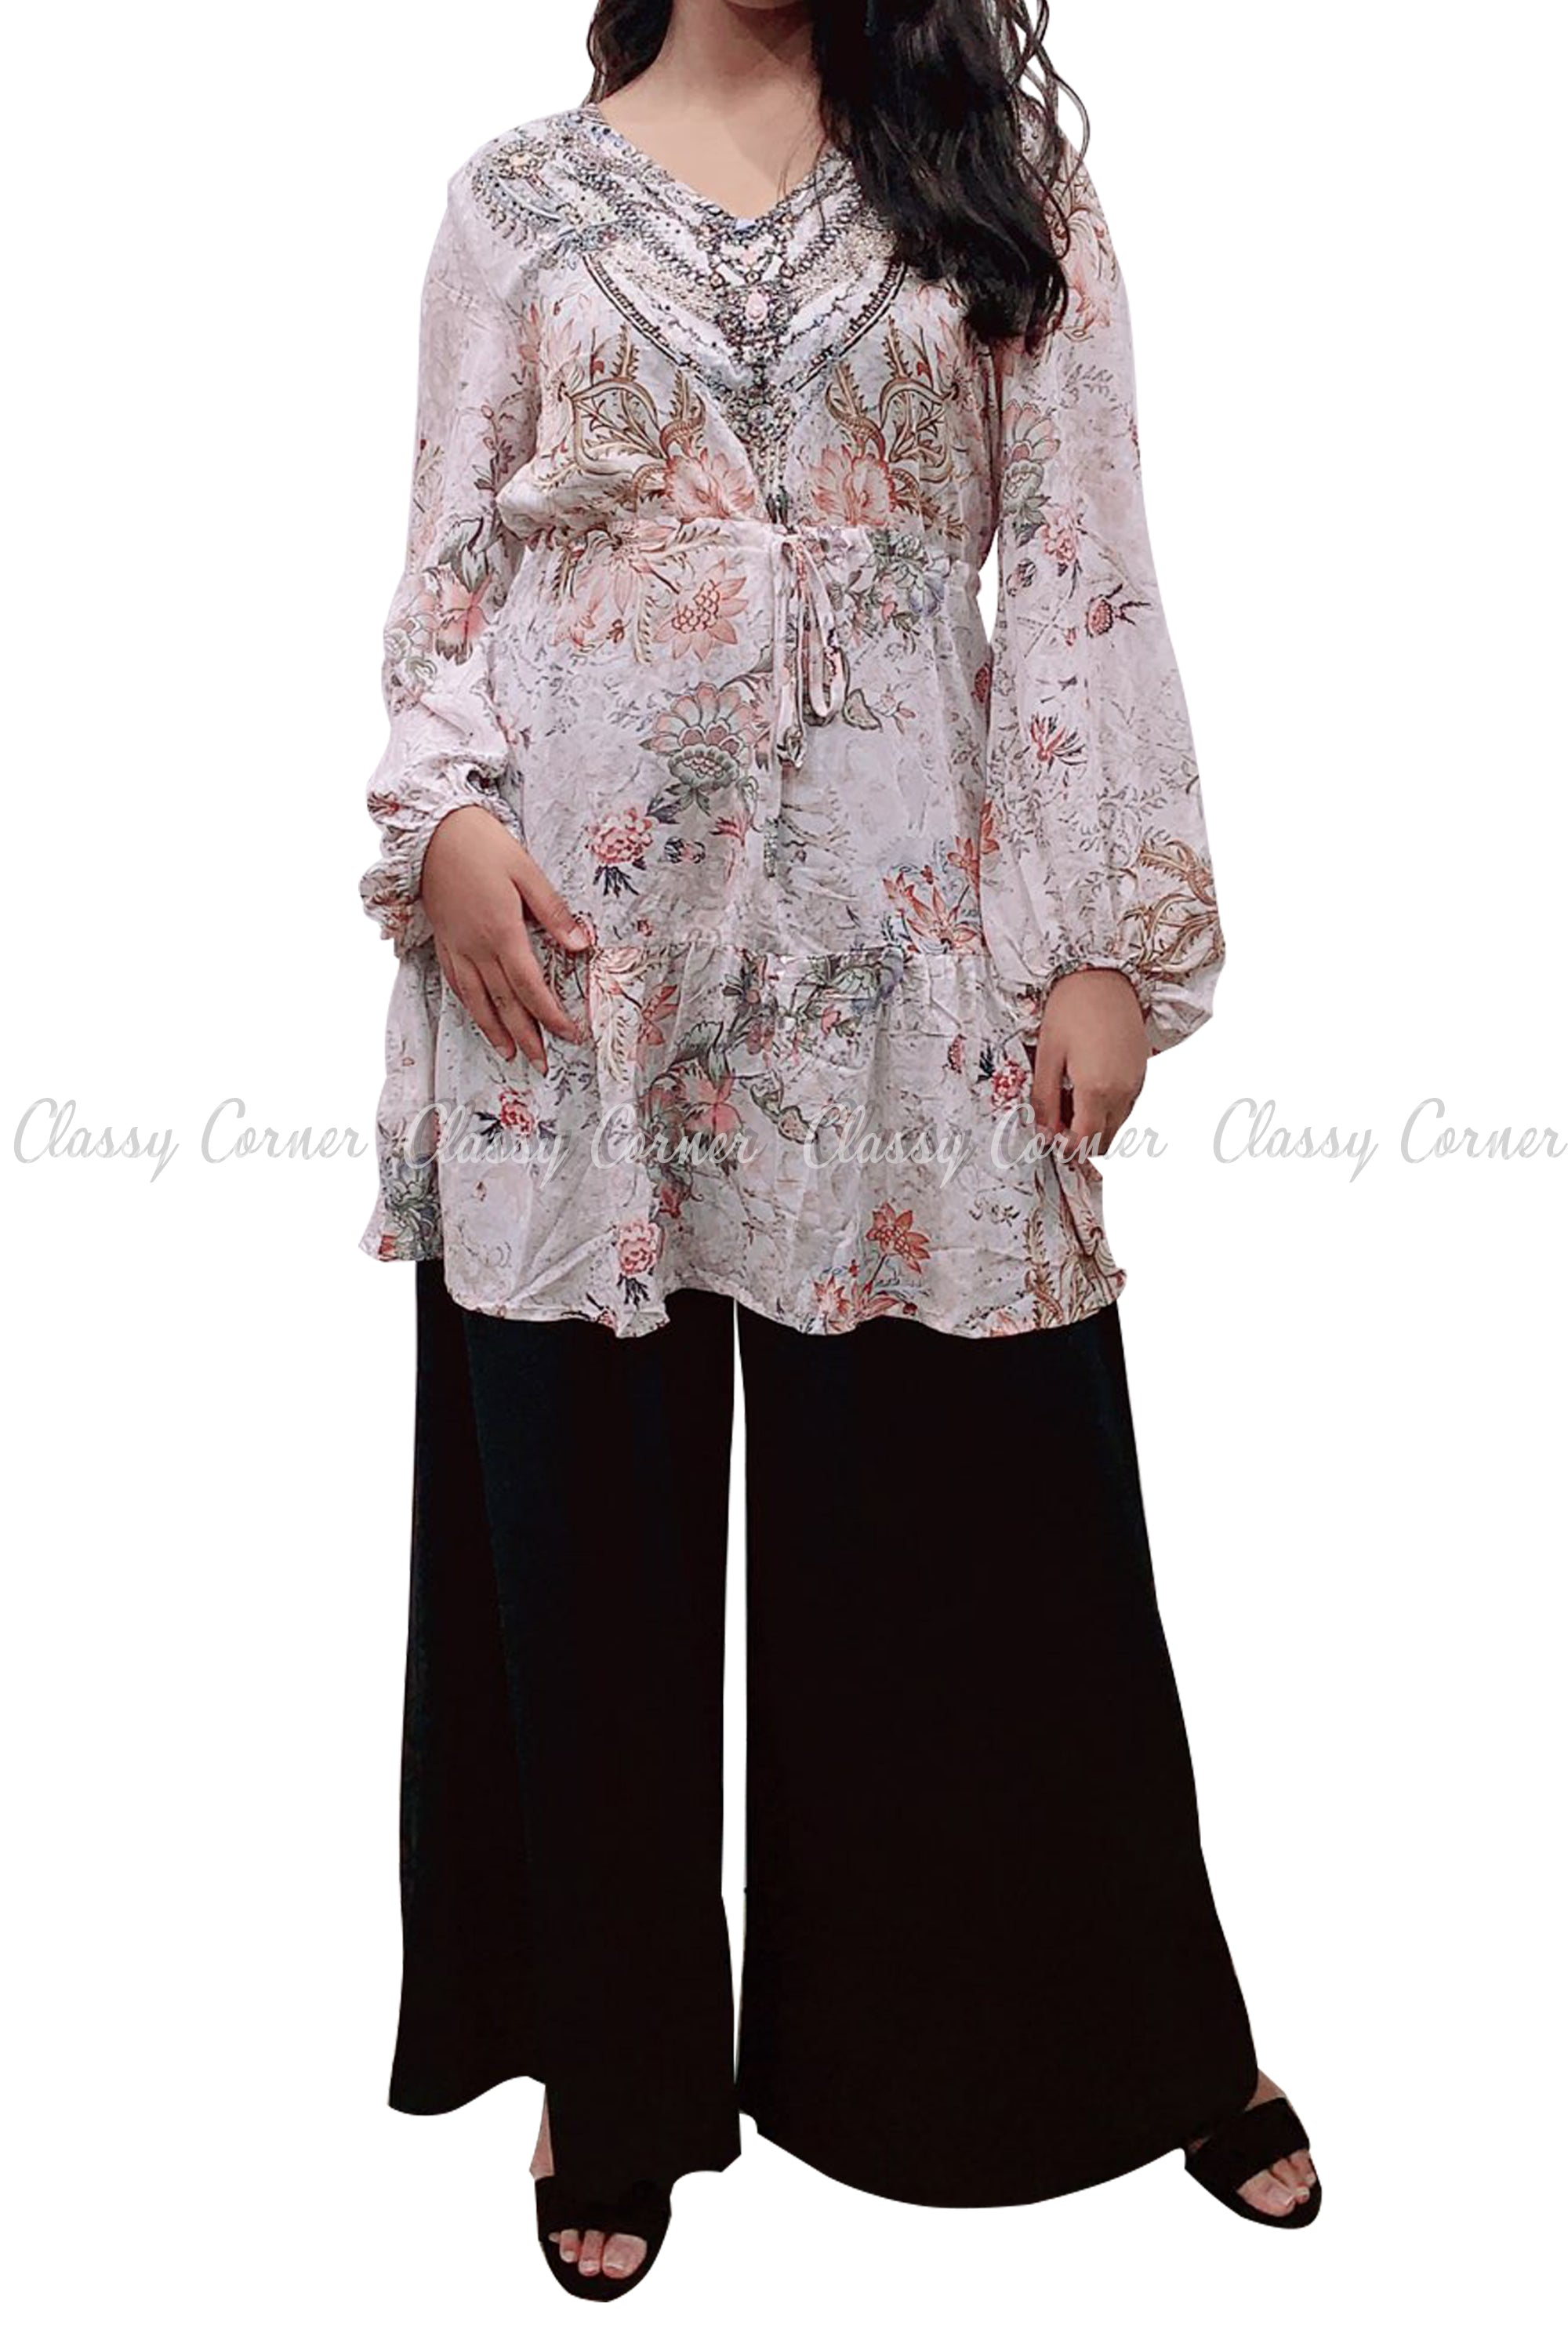 Tropical Floral Print White Modest Tunic Dress